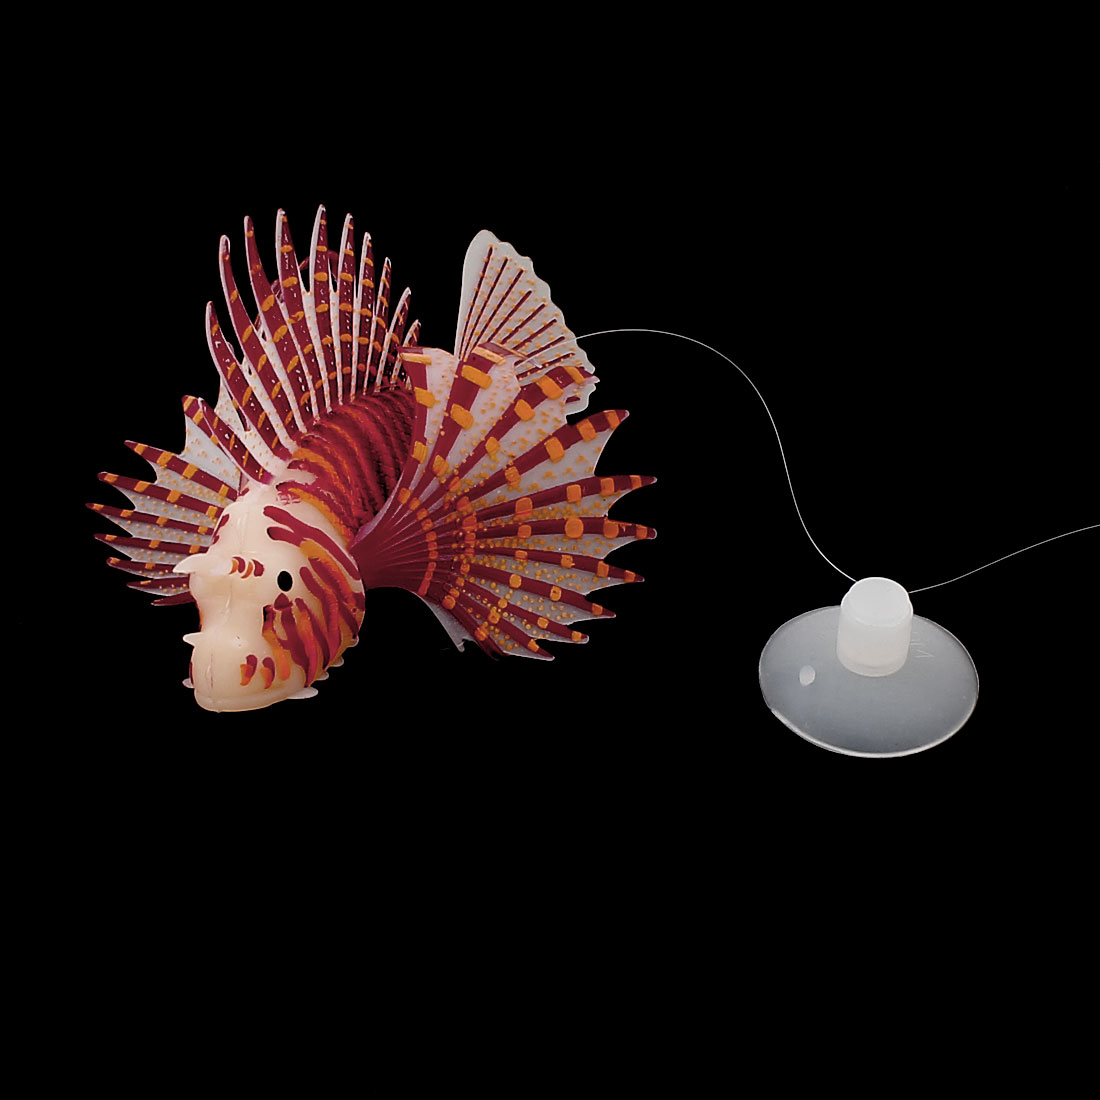 Soft Silicone Emulation Aquarium Fish Tank Luminous Lionfish Ornament Brown Orange